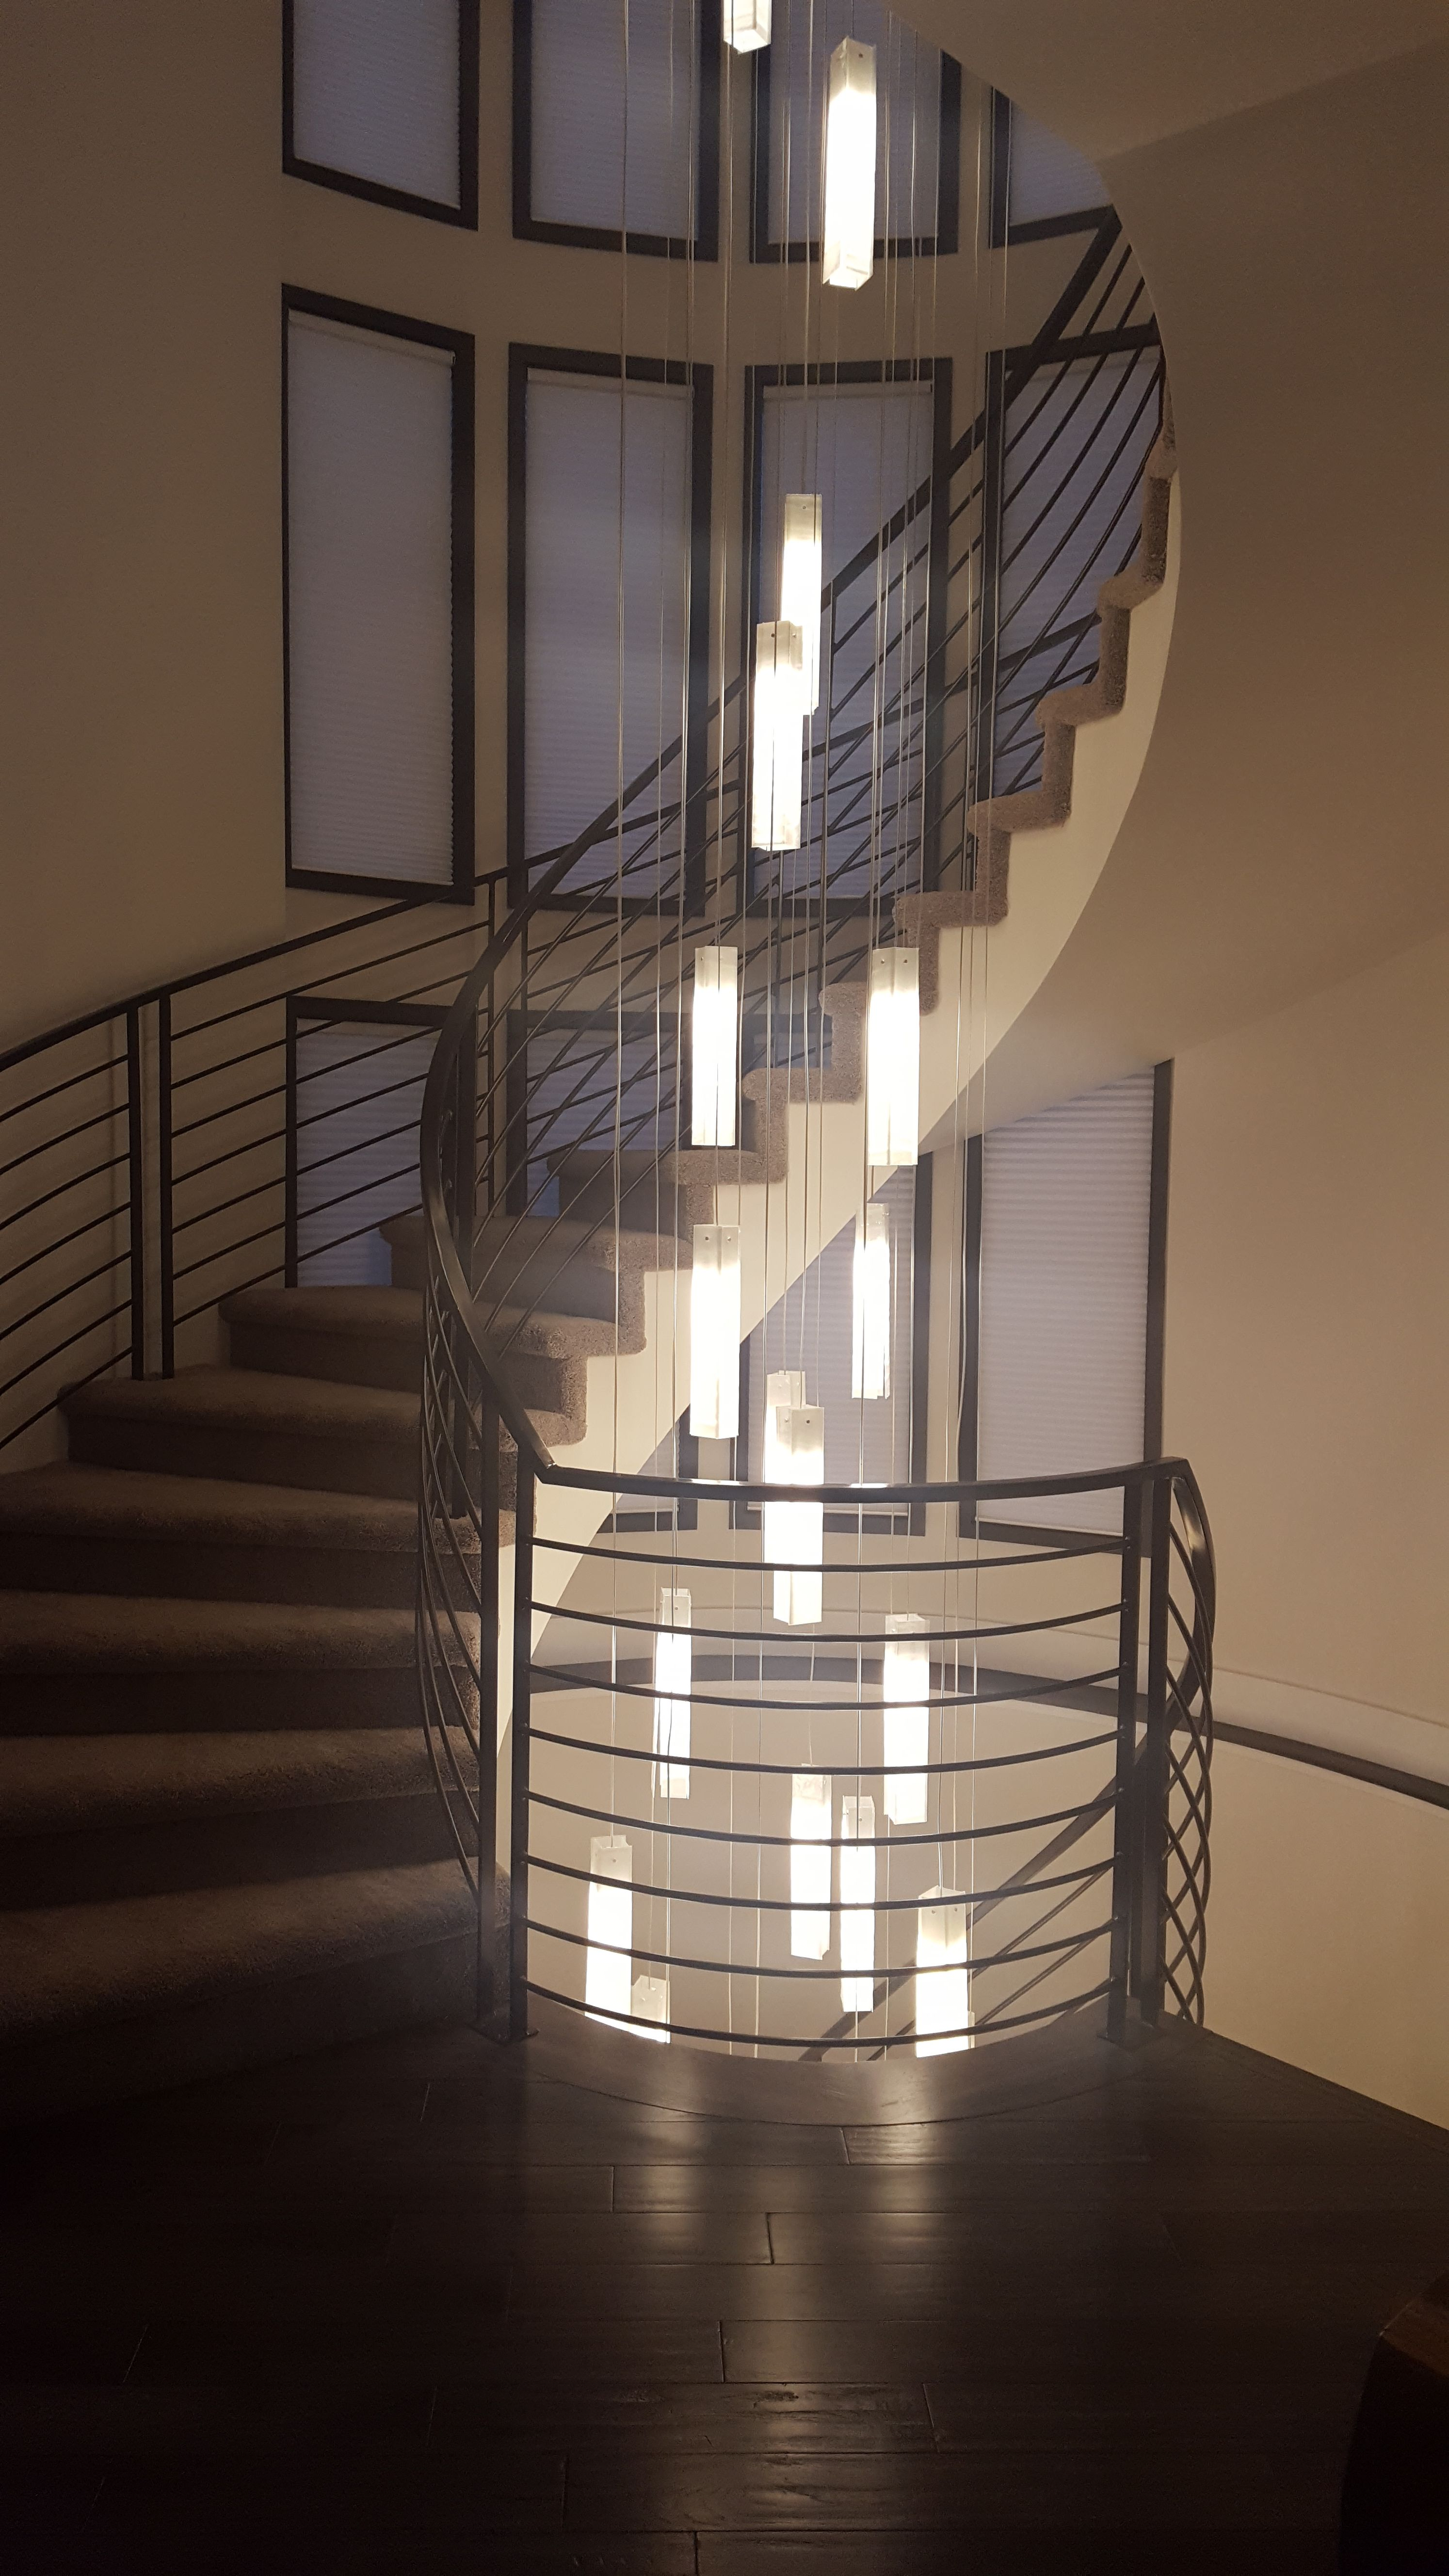 Multi Pendant Chandelier In Three Story Staircase Contemporary Foyer Chandelier Modern Chandelier Foyer Staircase Chandelier Foyer Decorating